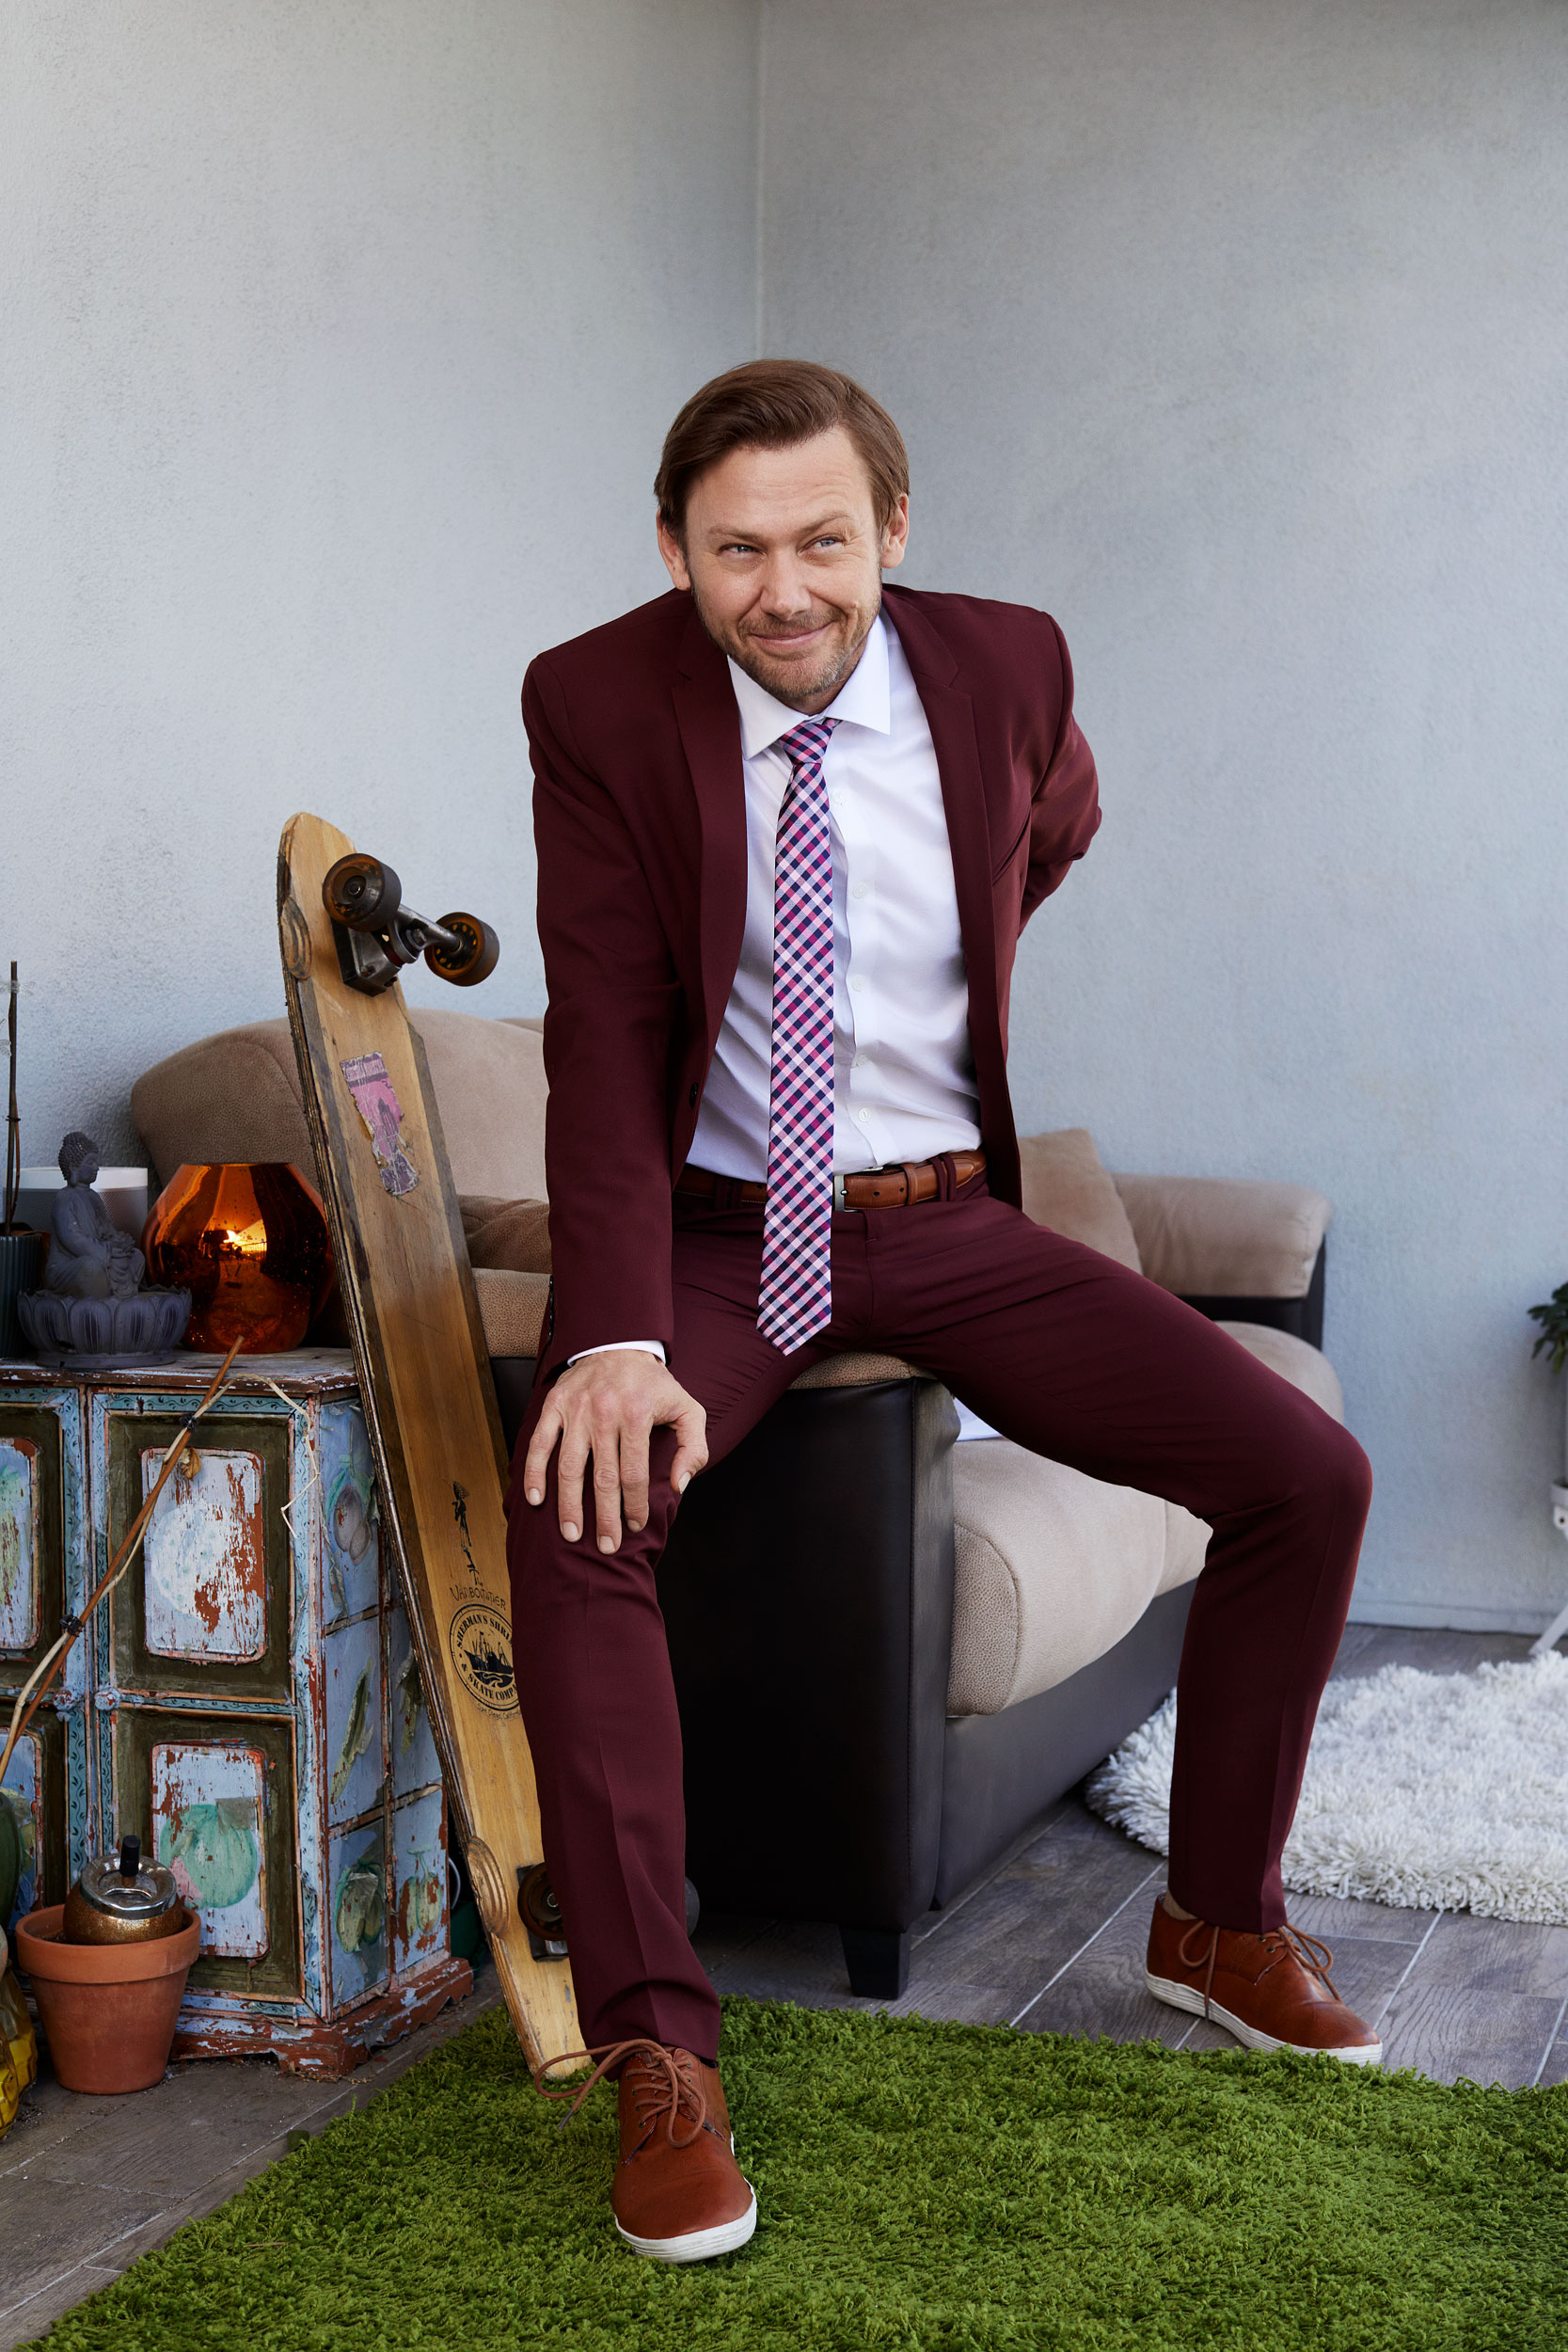 Celebrity and actor Jimmi Simpson sitting on a porch in a maroon suit. Kim Genevieve Los Angeles Portrait Photographer